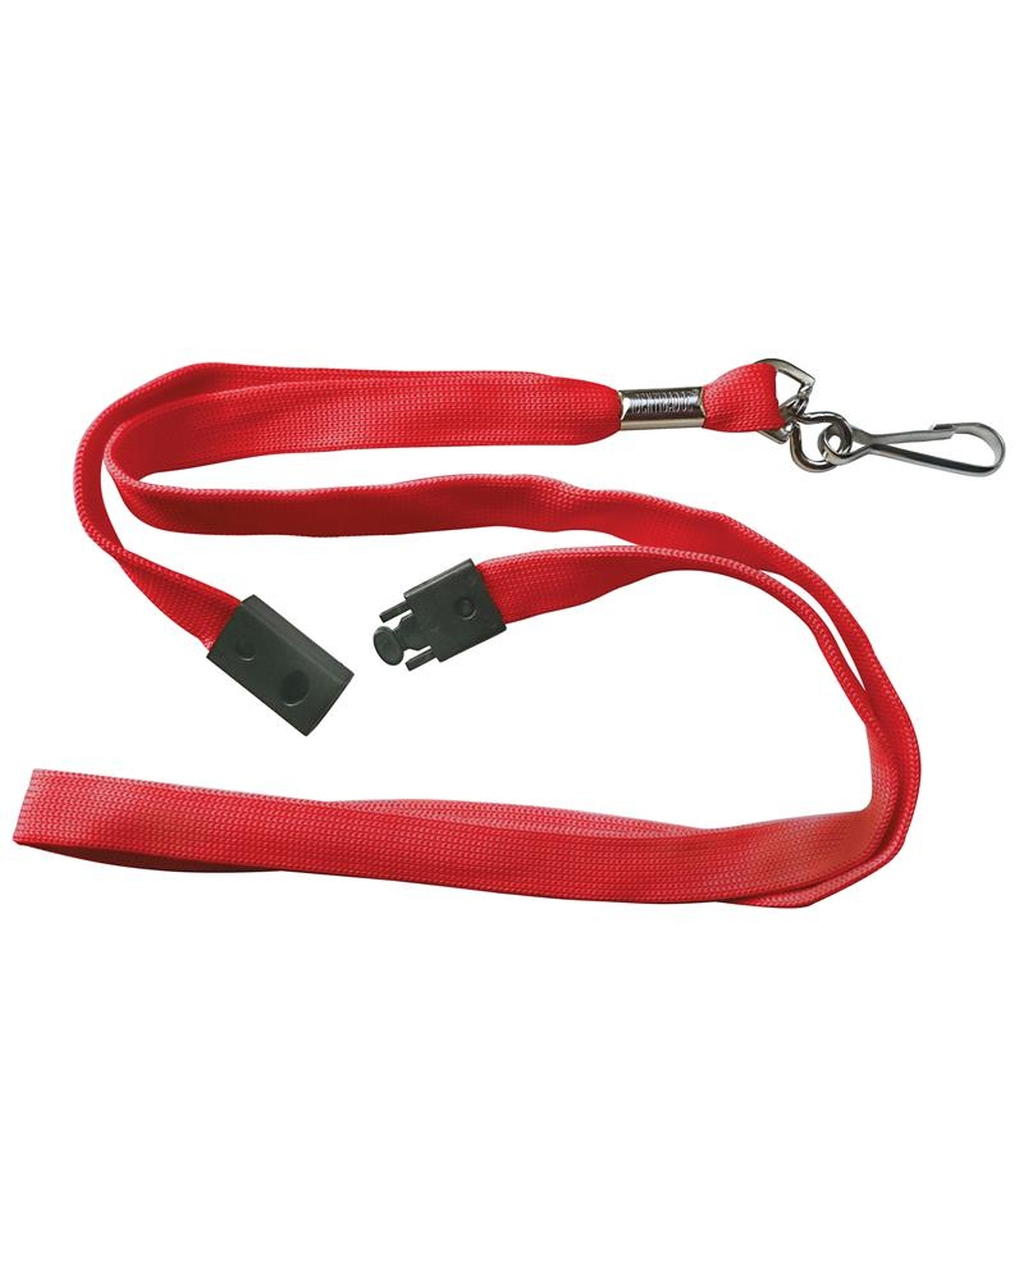 10 Breakaway Lanyards - Red